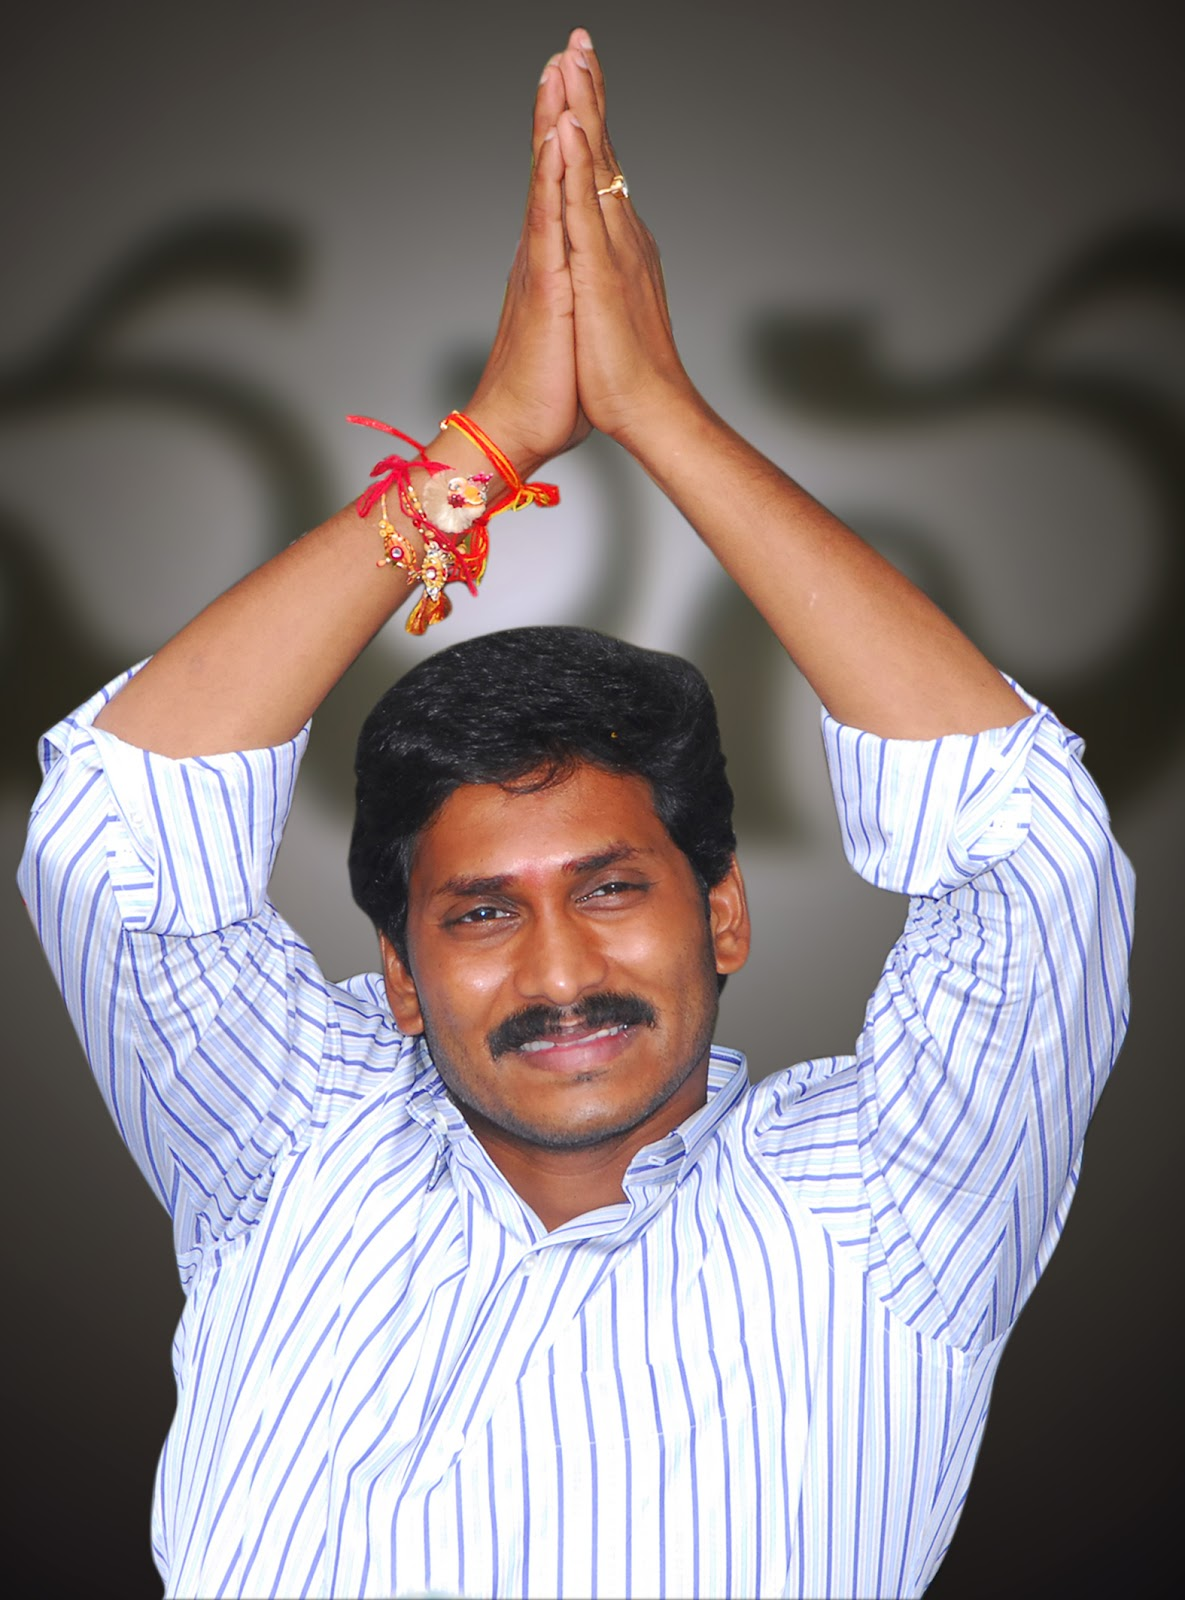 Ysr all songs free download.